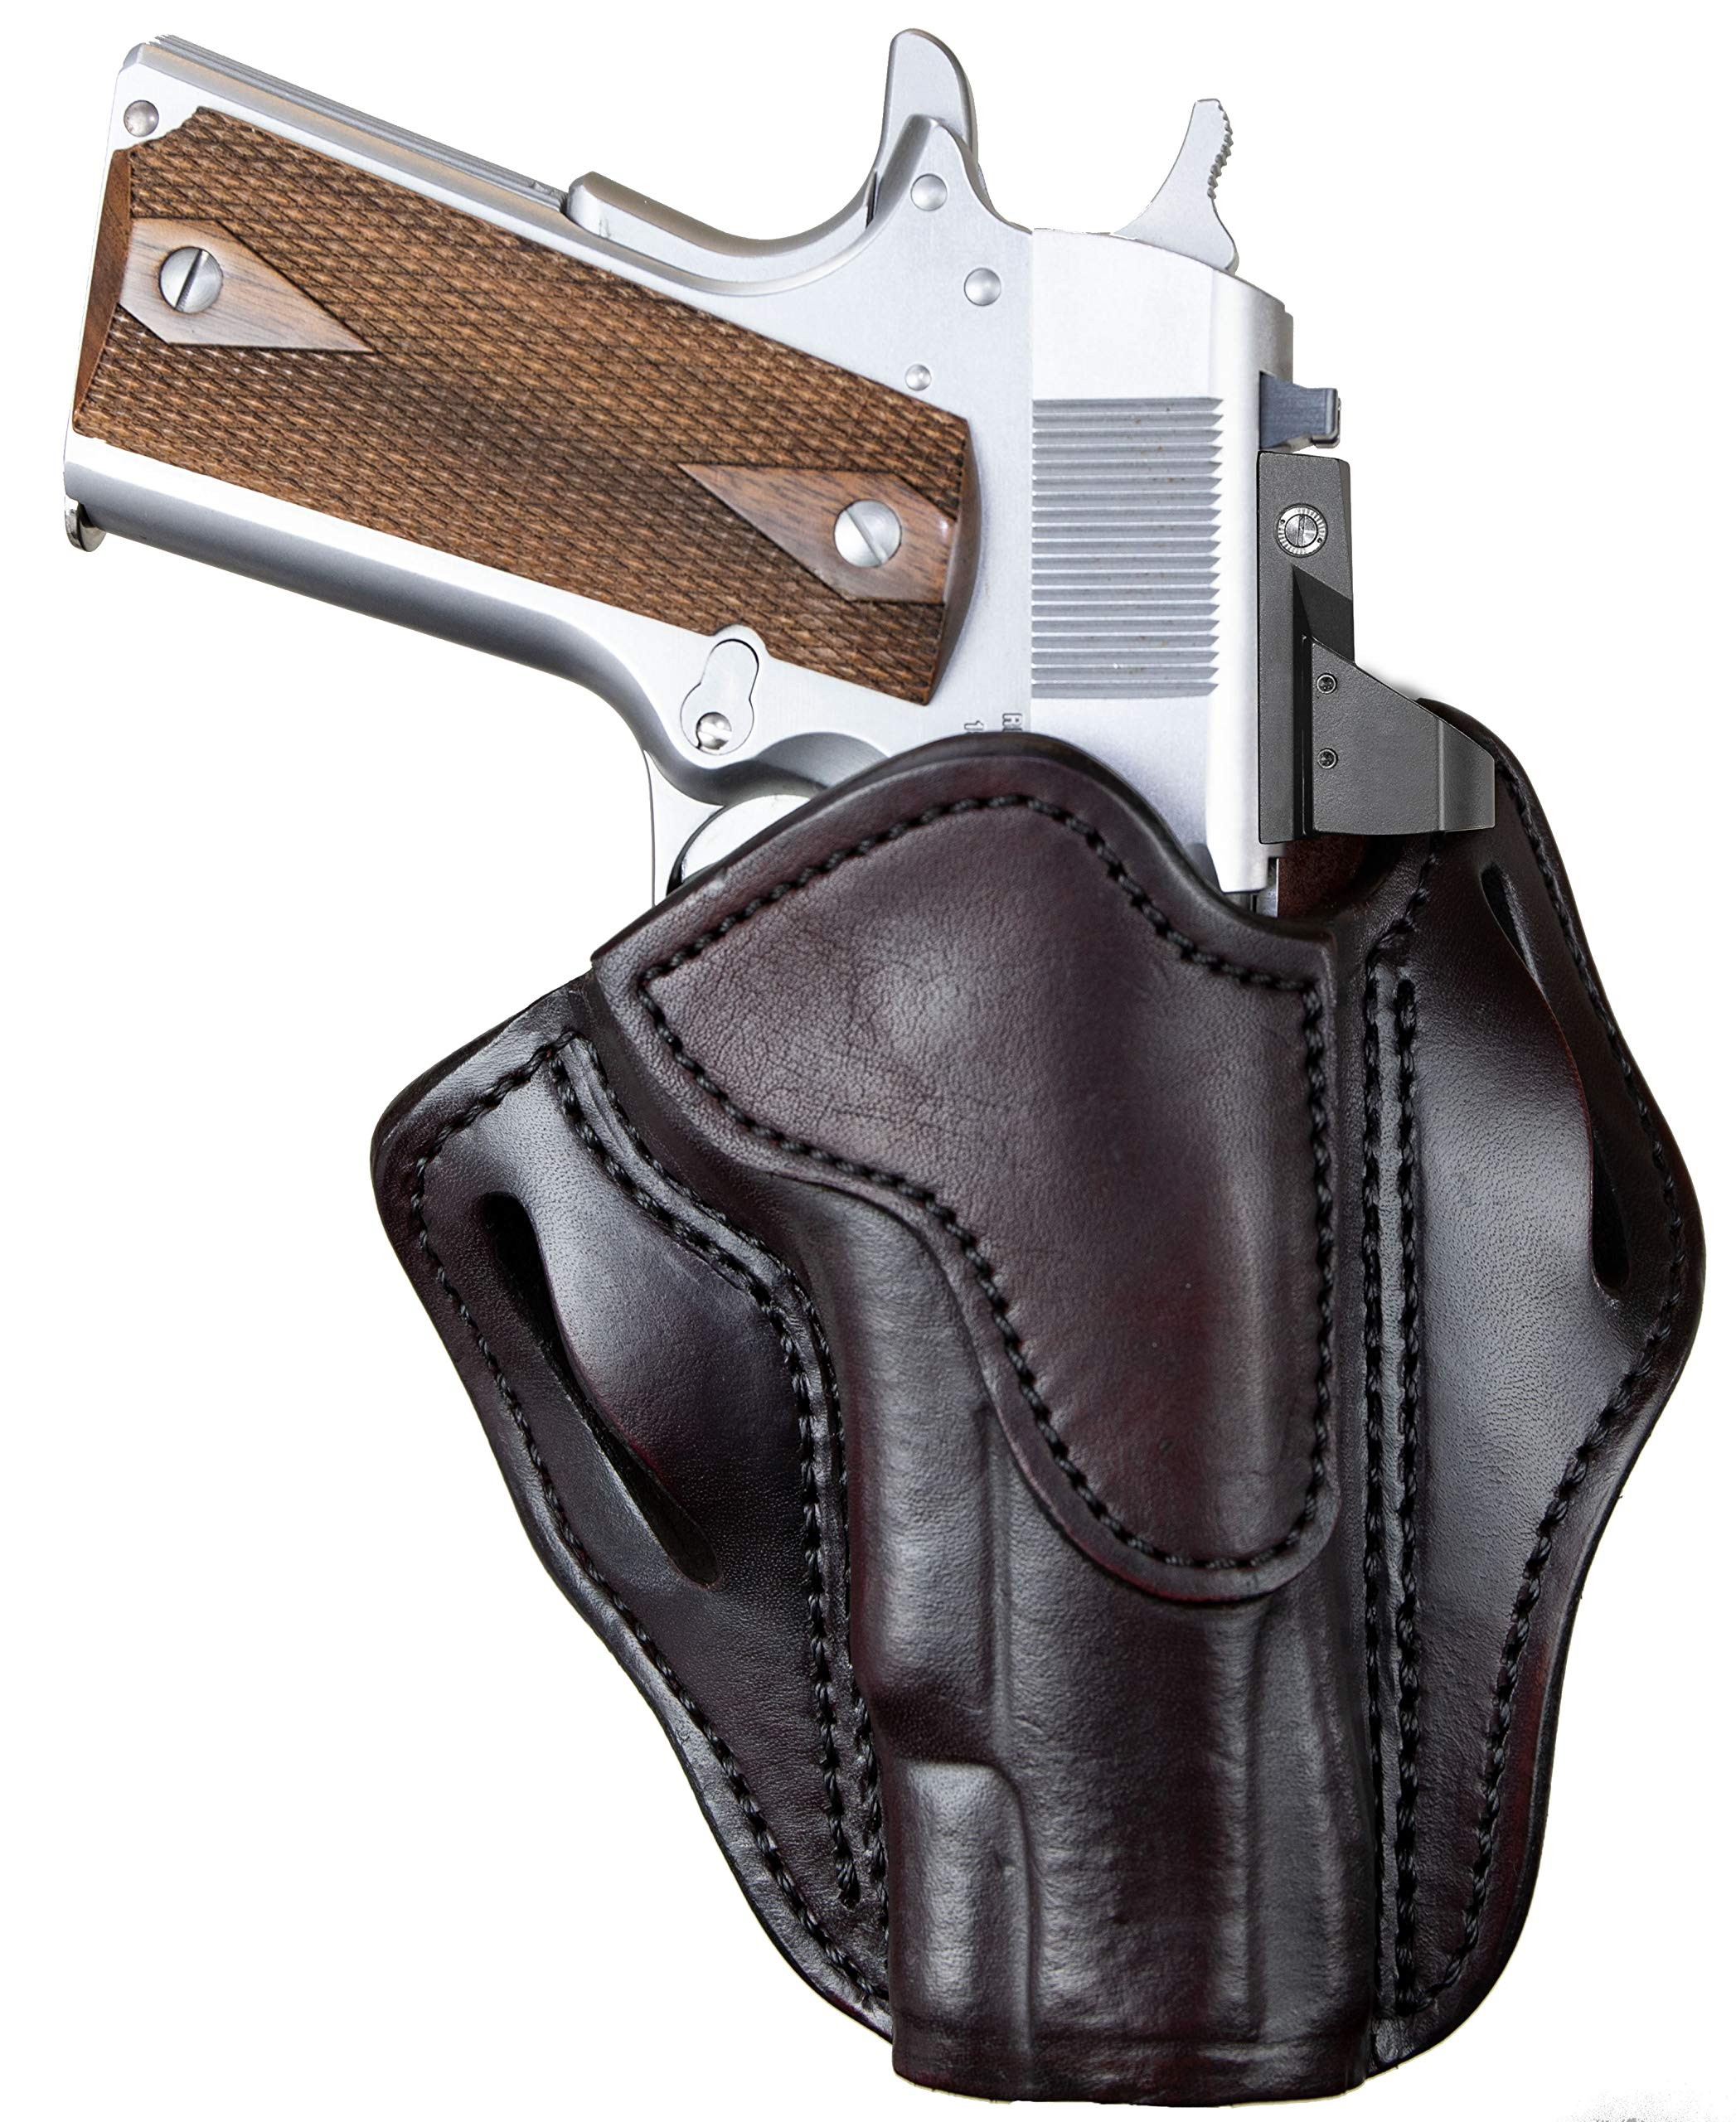 "1791 GUNLEATHER 1911 Optic Ready Holster - OWB CCW Holster - Right Handed Leather Gun Holster for Belts - Fits 1911 Models with 4"" and 5"" Barrels"